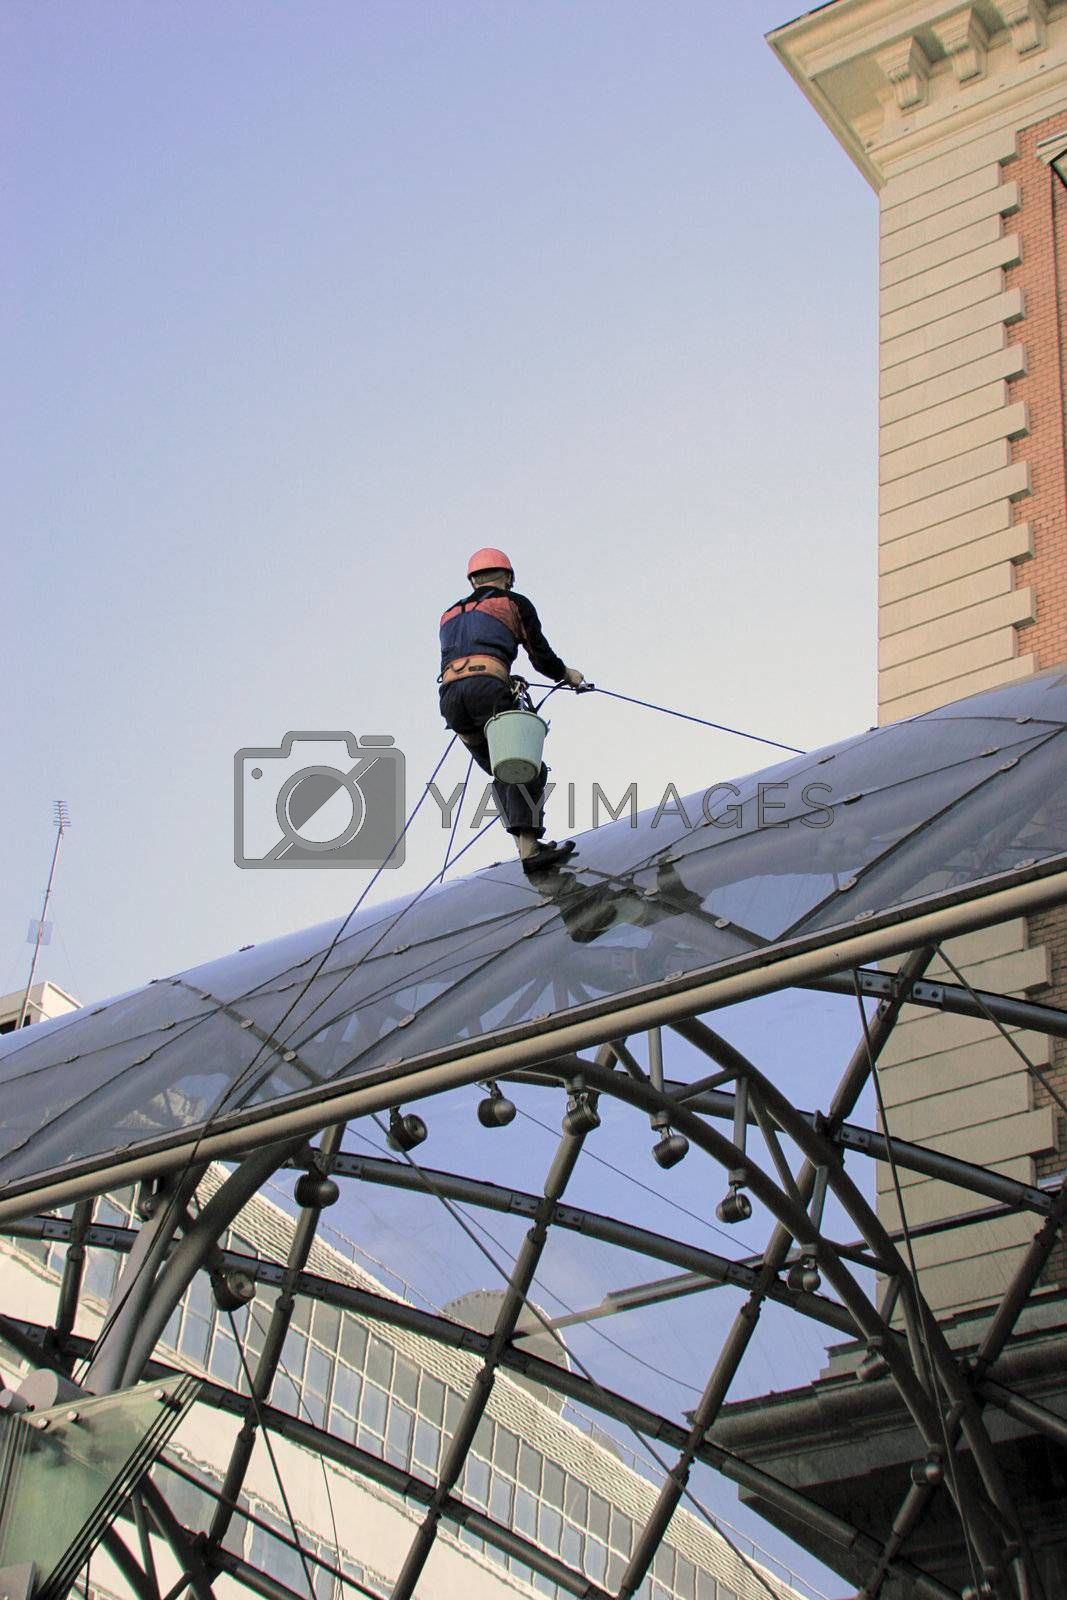 One worker cleaning glass on  building's roof.